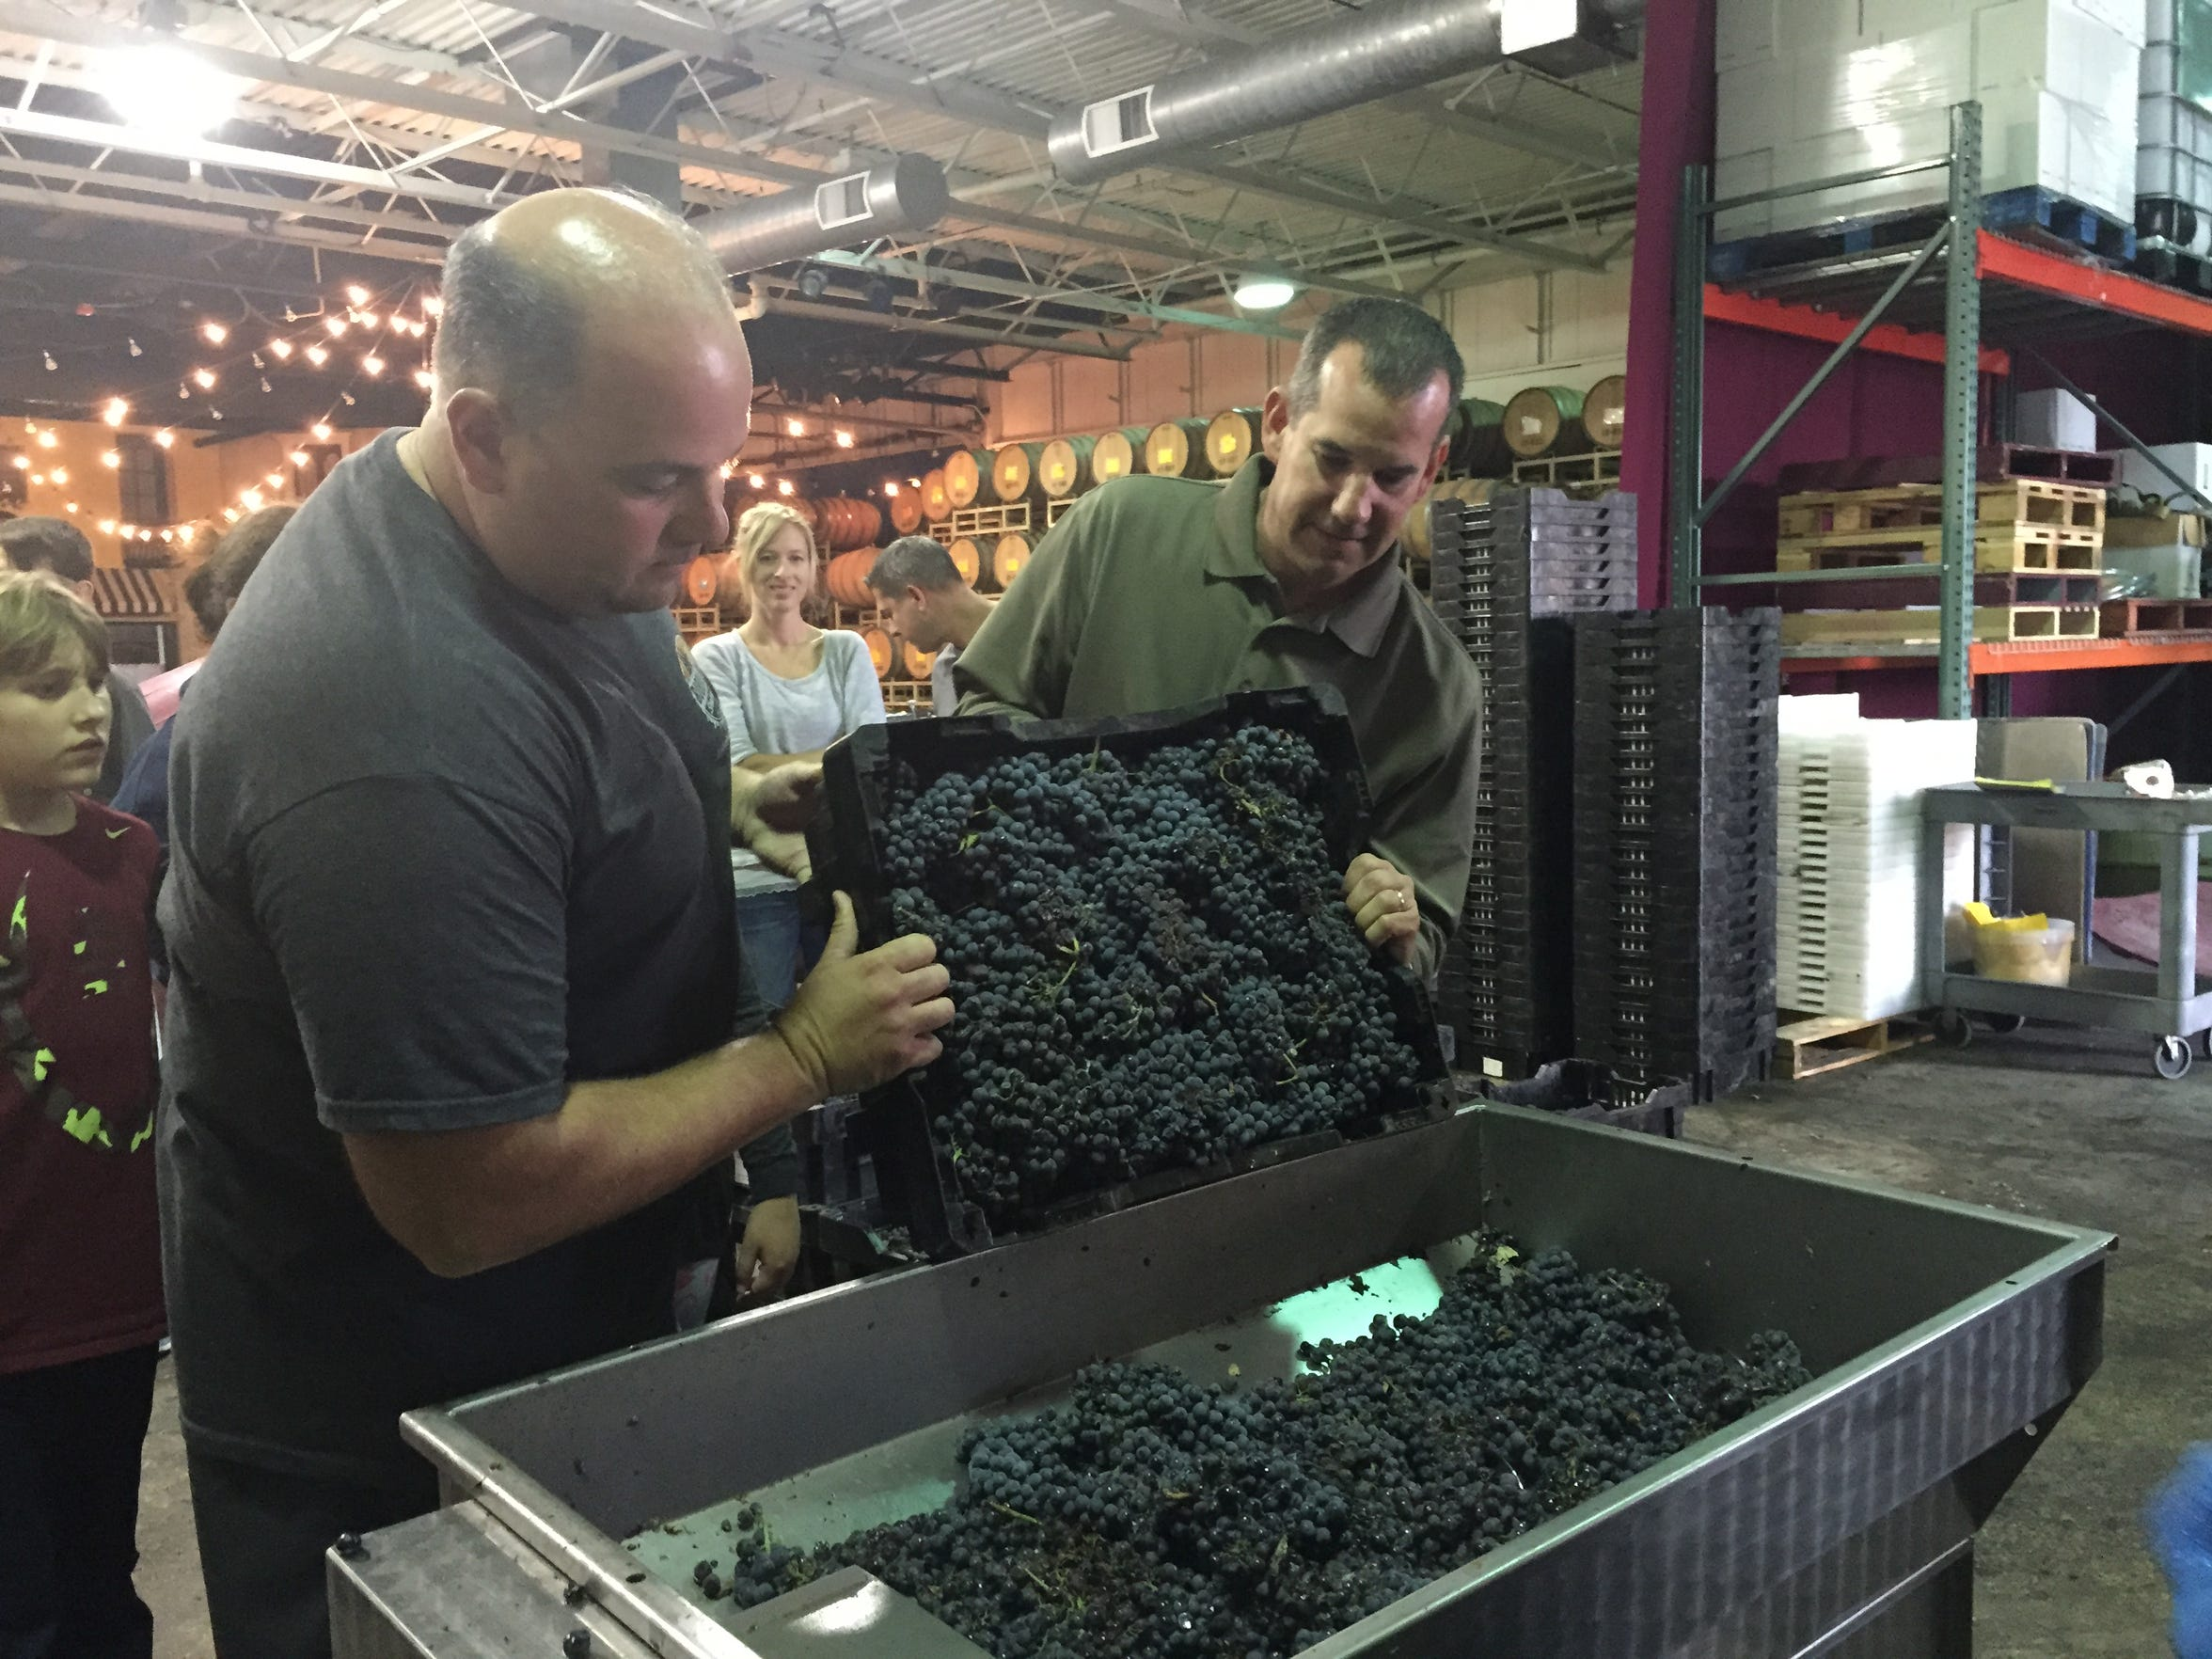 Dominic Anzideo of Voorhees (left) and David Imperatore of Cherry Hill dump fresh grapes into a machine for crushing and stem removal as they begin the process of making their own wine Sunday at the Wine Room in Cherry. Each of six families in their group will receive about 40 bottles of wine next year